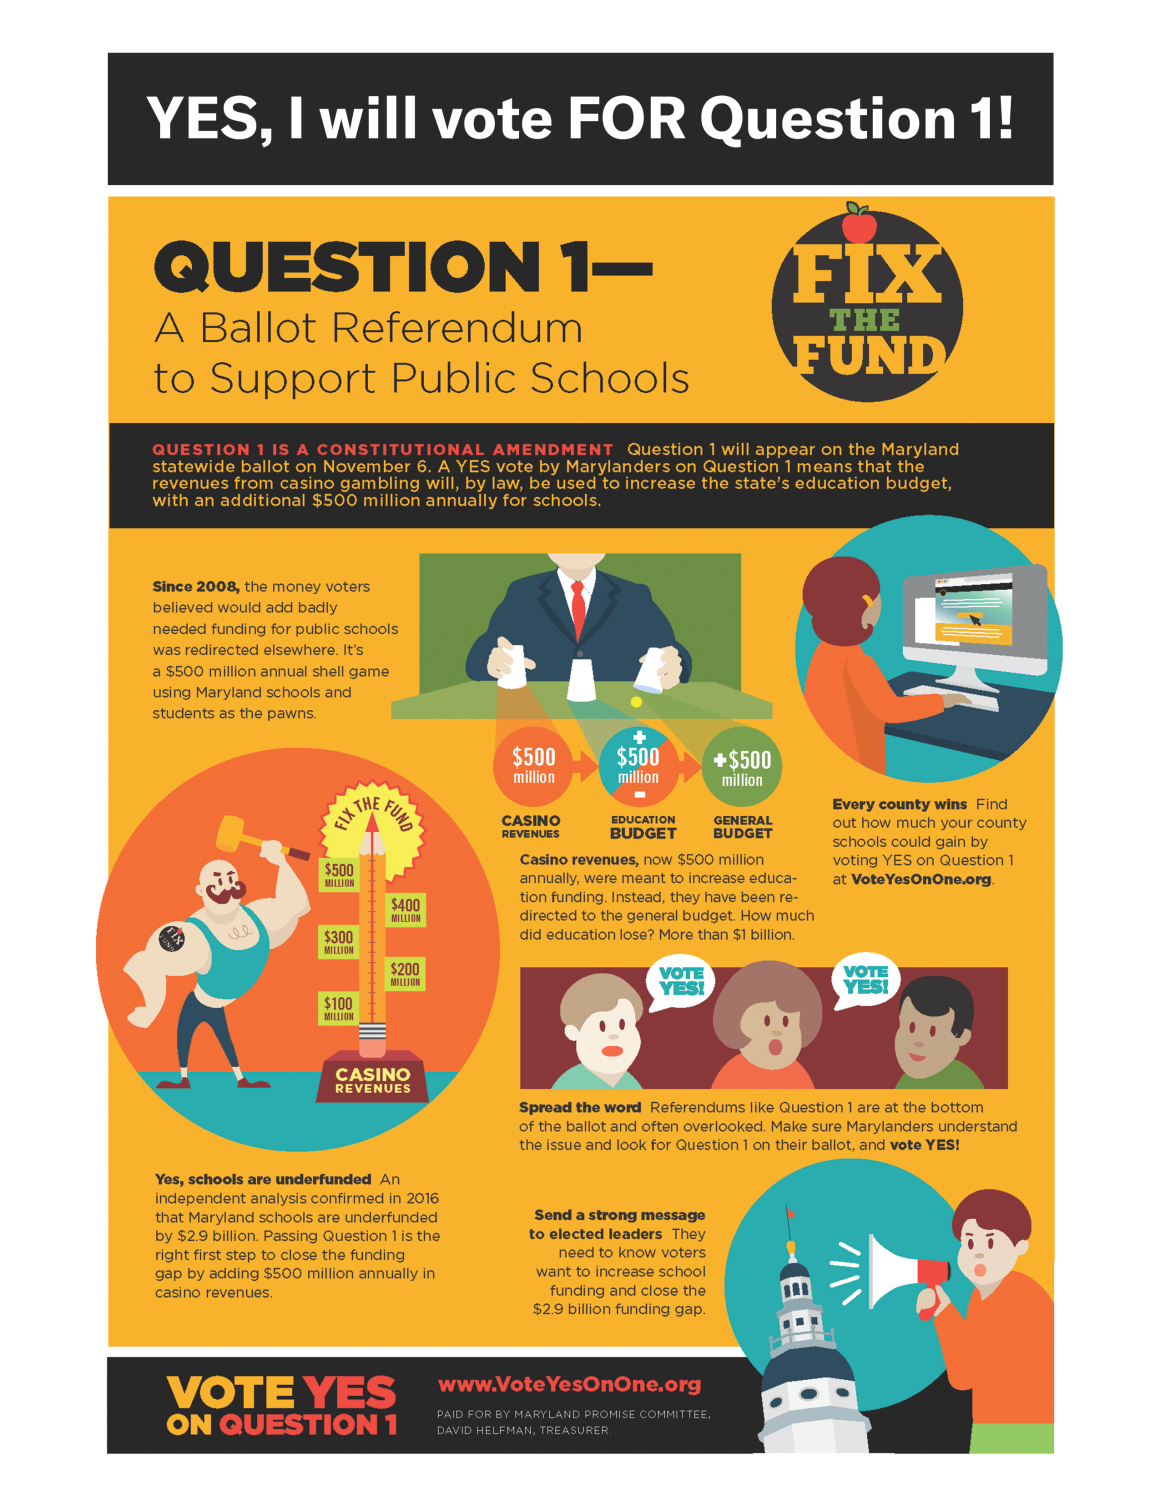 Vote FOR Question 1 infographic